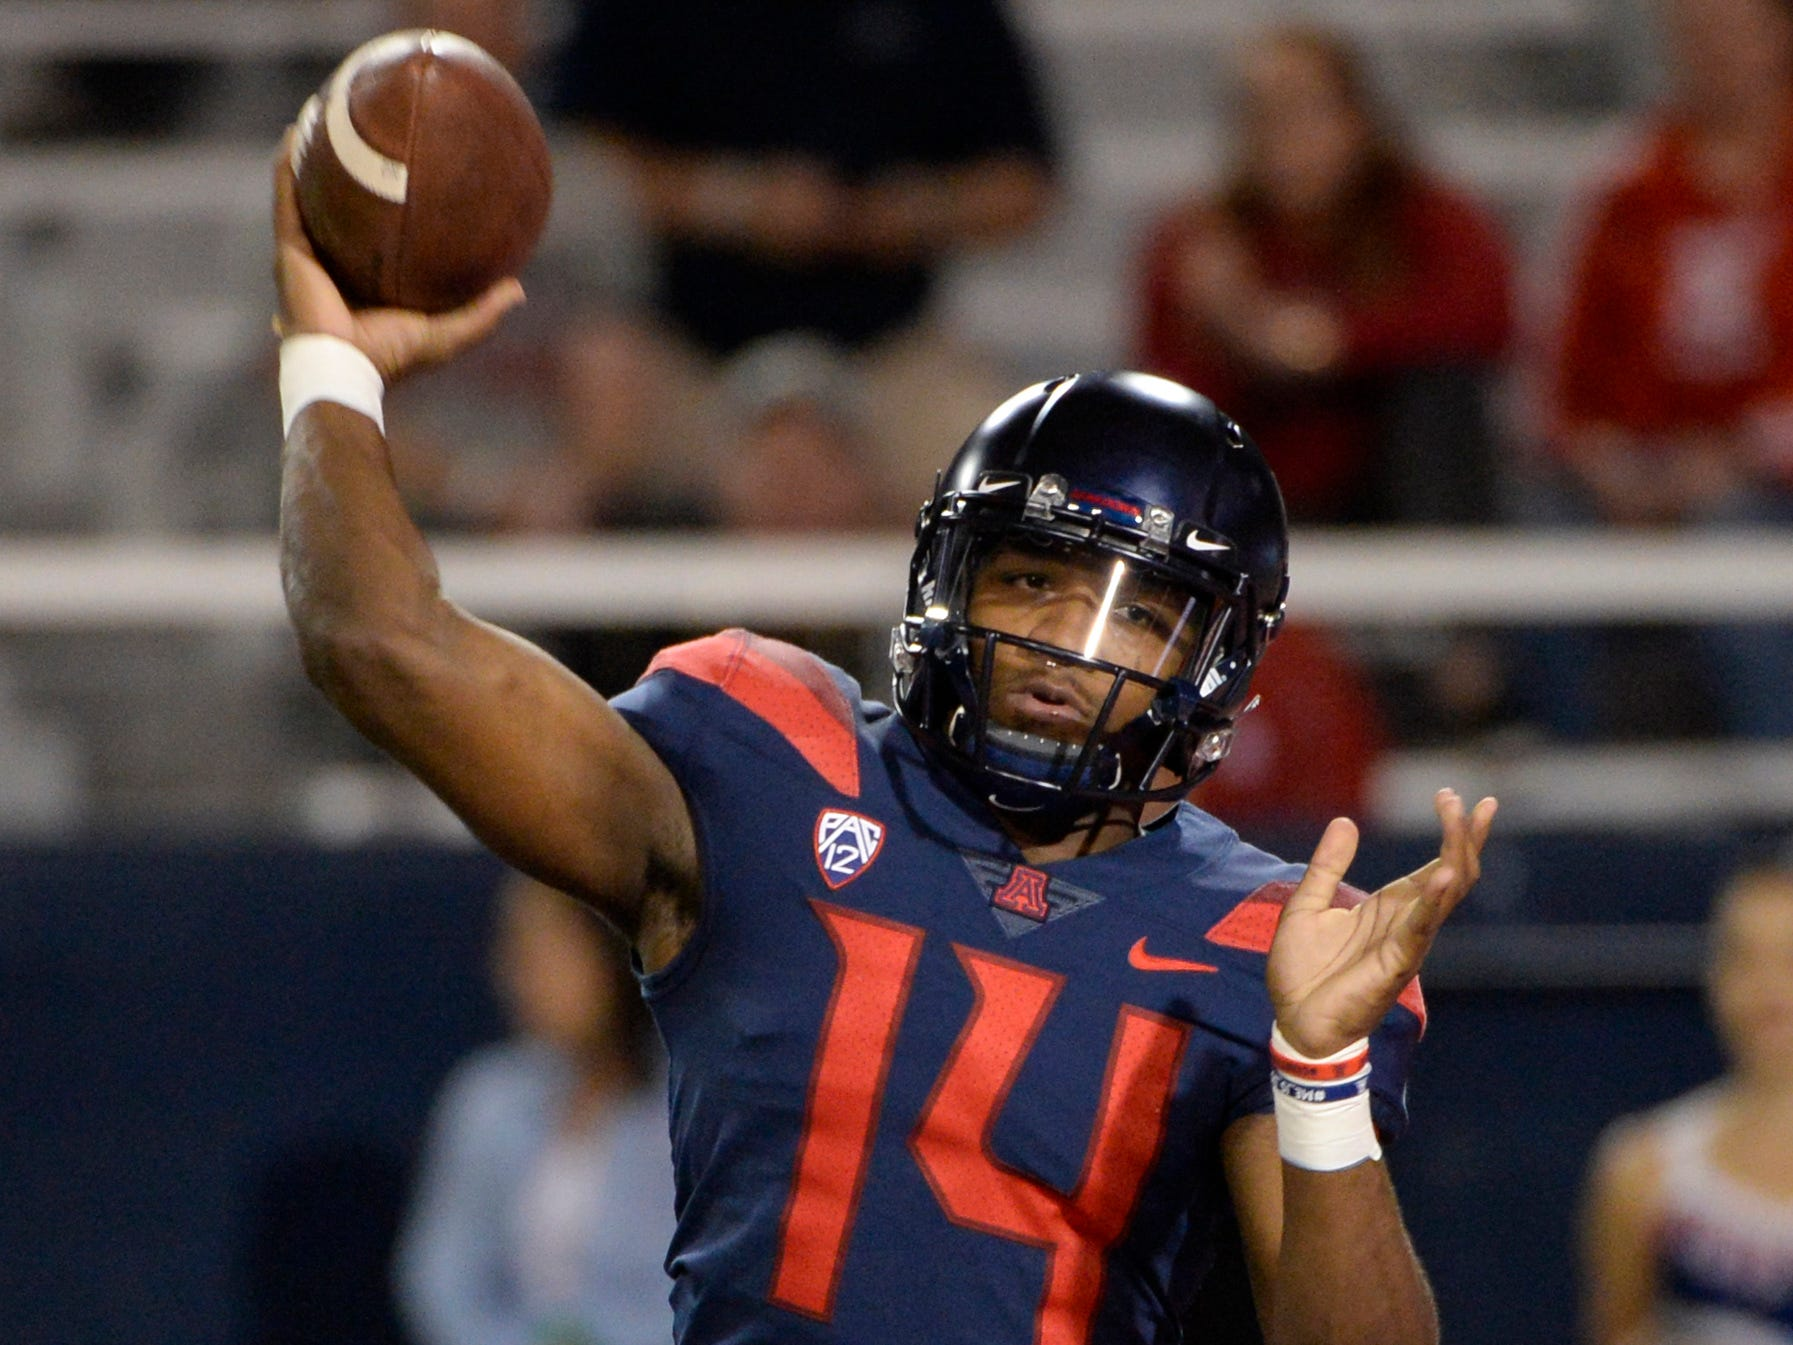 Nov 2, 2018; Tucson, AZ, USA; Arizona Wildcats quarterback Khalil Tate (14) passes the ball against the Colorado Buffaloes during the first half at Arizona Stadium.